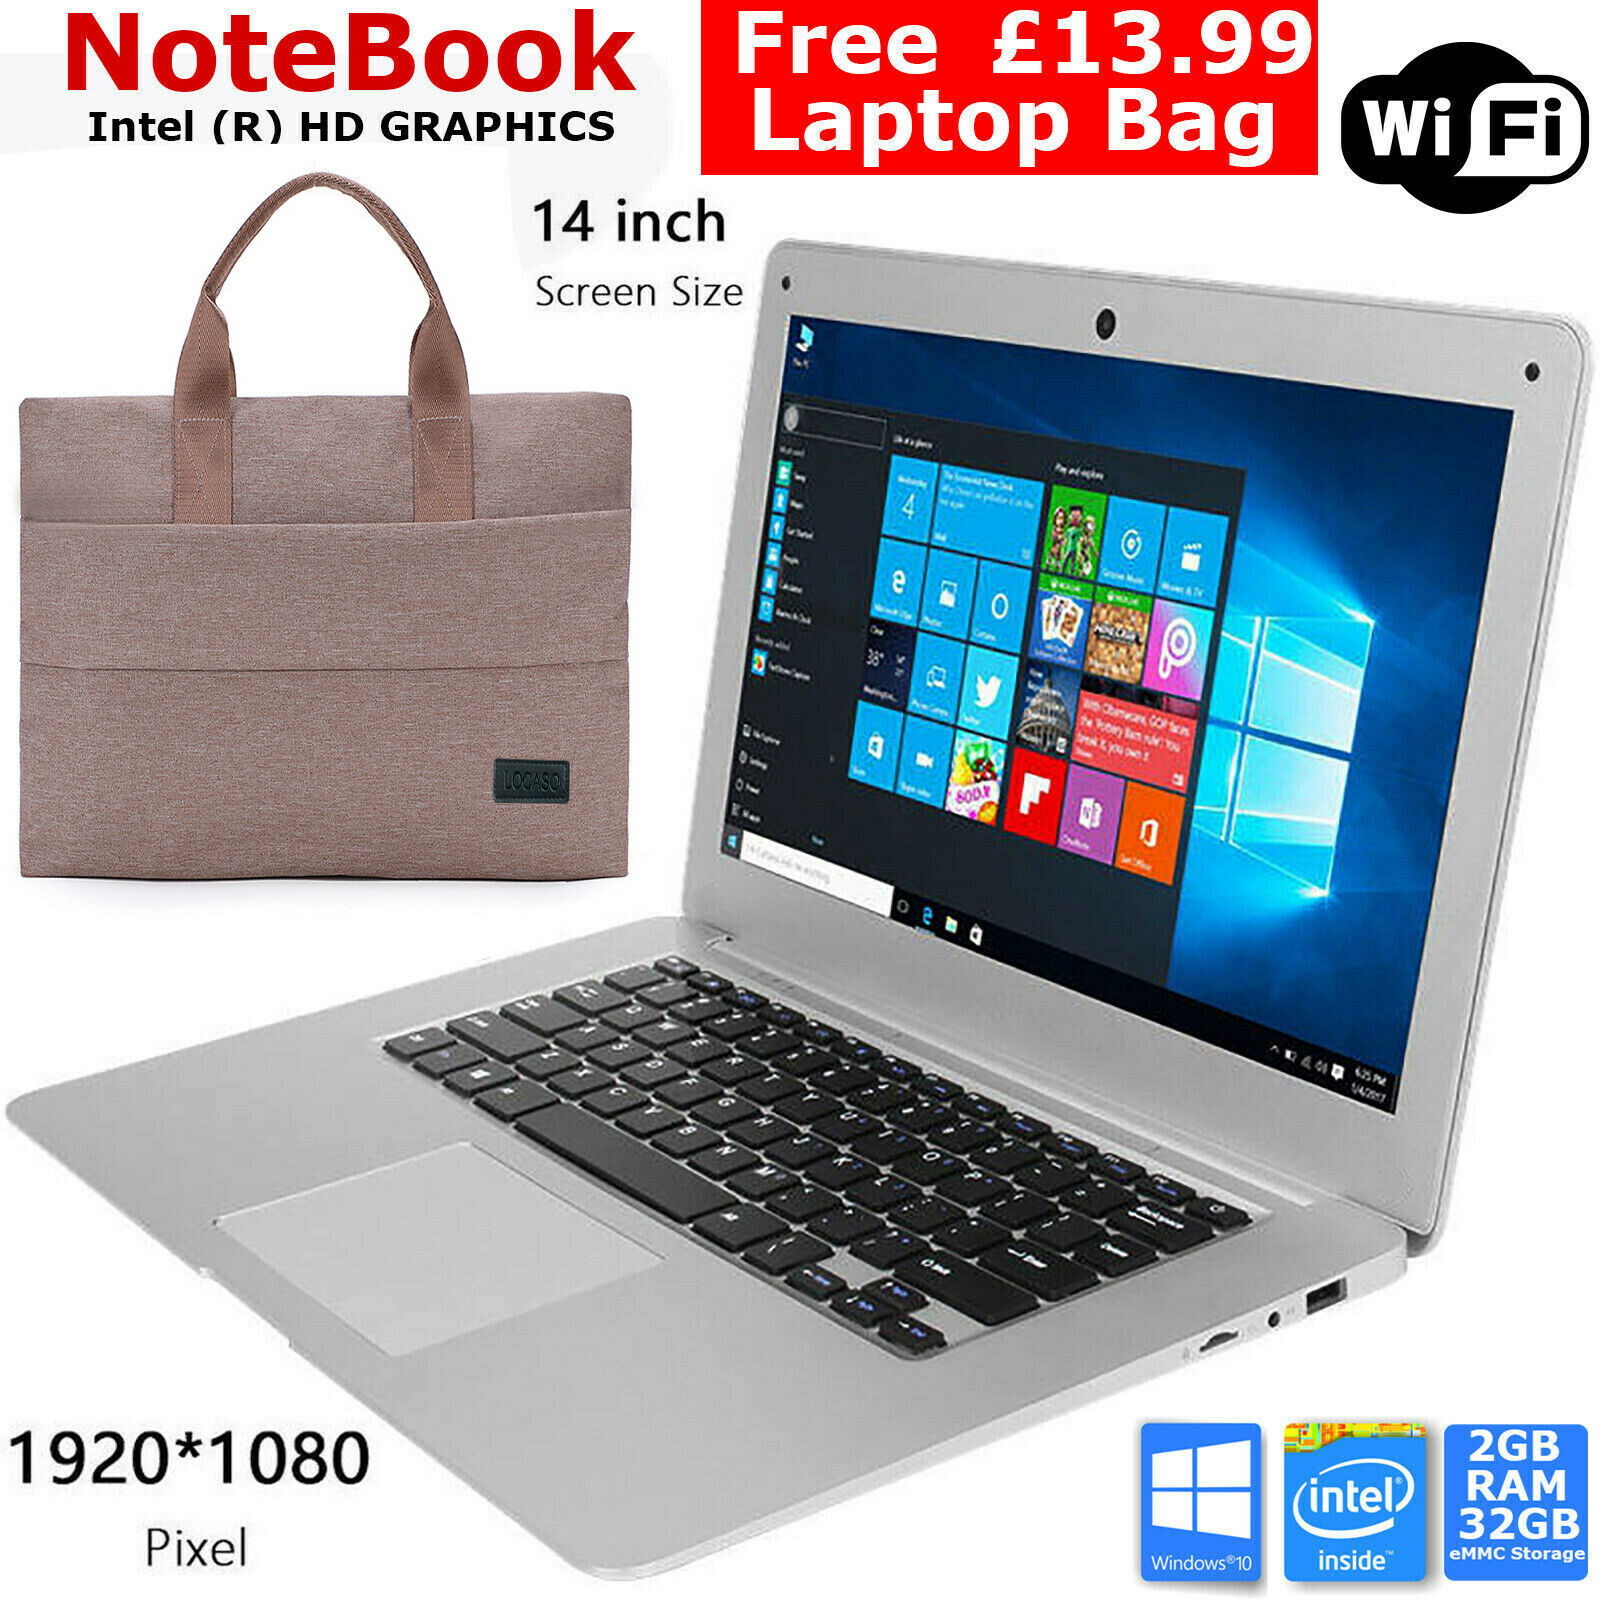 with Free Laptop Bag